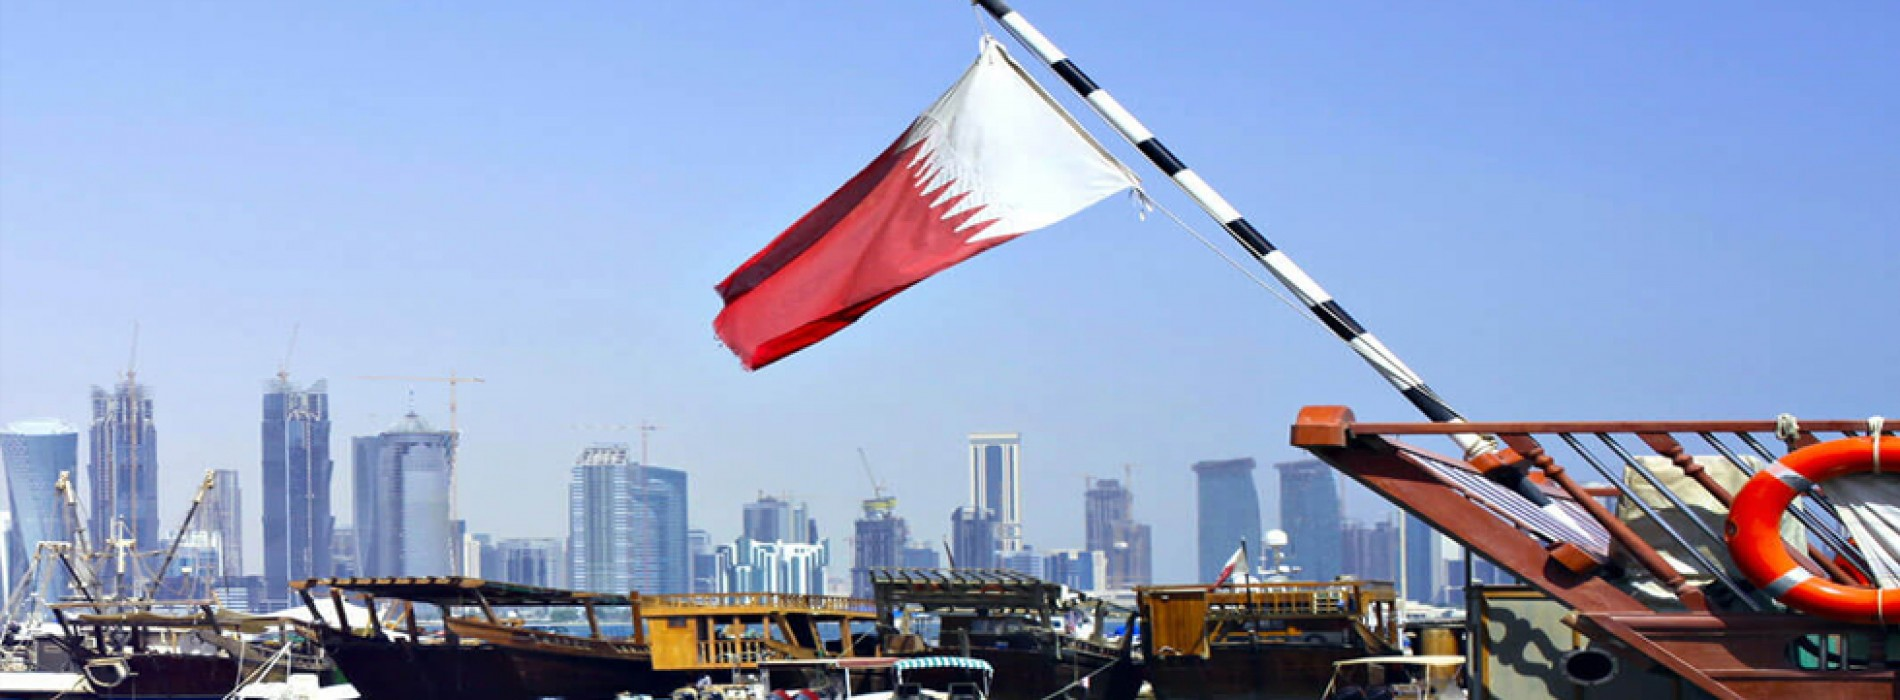 Qatar waives visa requirements for 80 countries including India